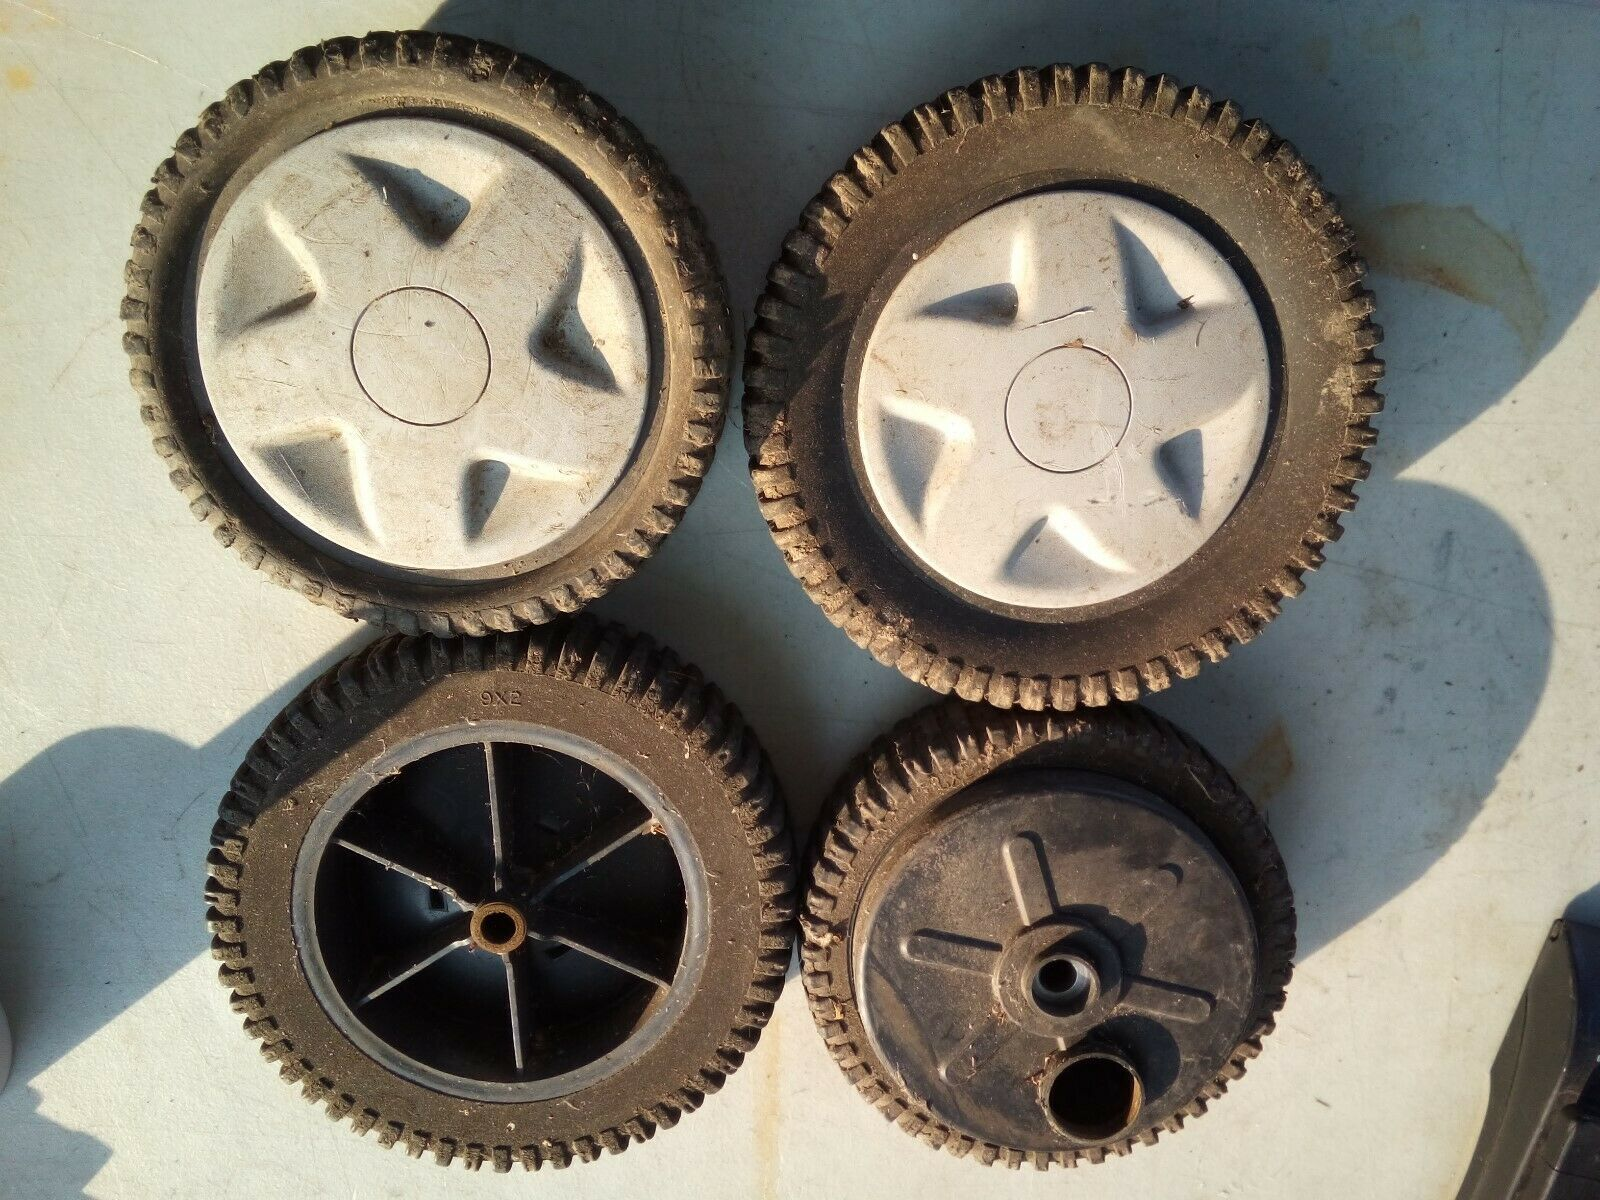 Primary image for 9NN72 SET OF WHEELS FROM CRAFTSMAN MOWER, 917.377180, FWD, GOOD TEETH AND TREAD